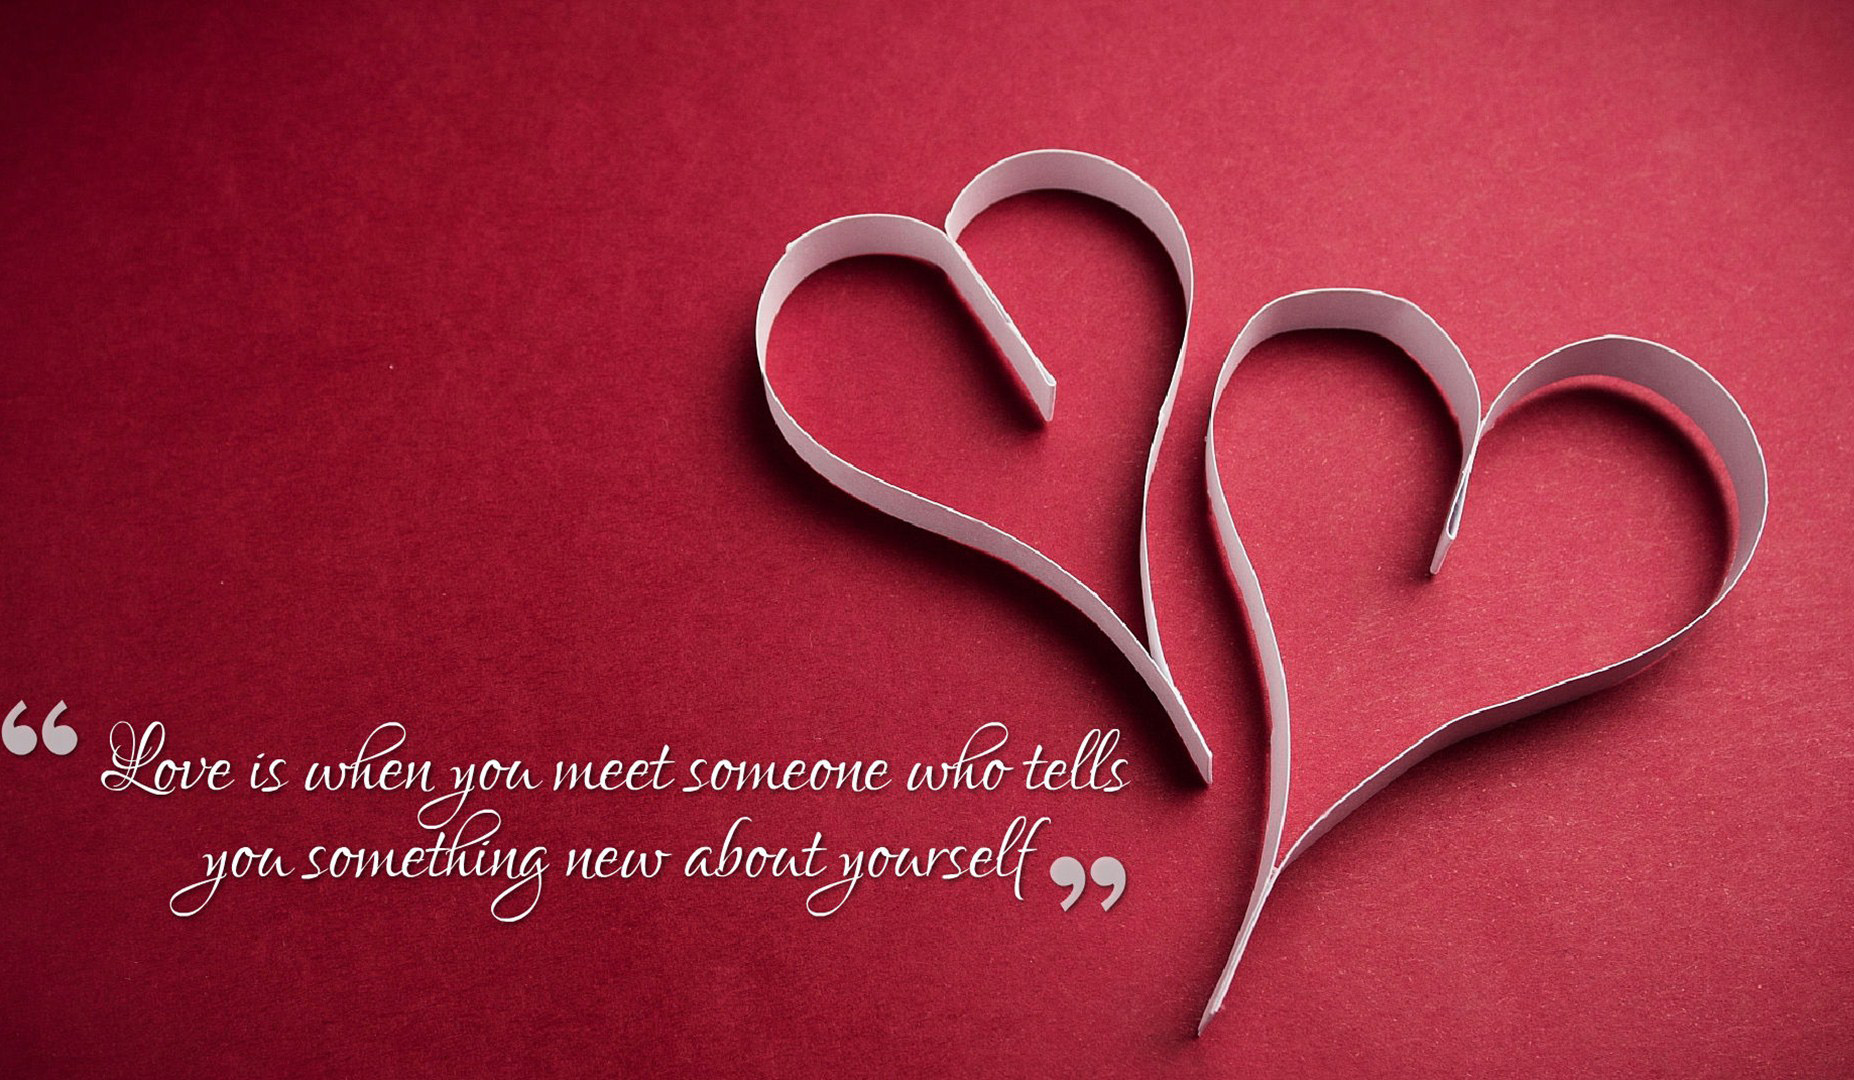 New Love Beautiful Wallpaper : Quotes About Love Wallpapers, Pictures, Images